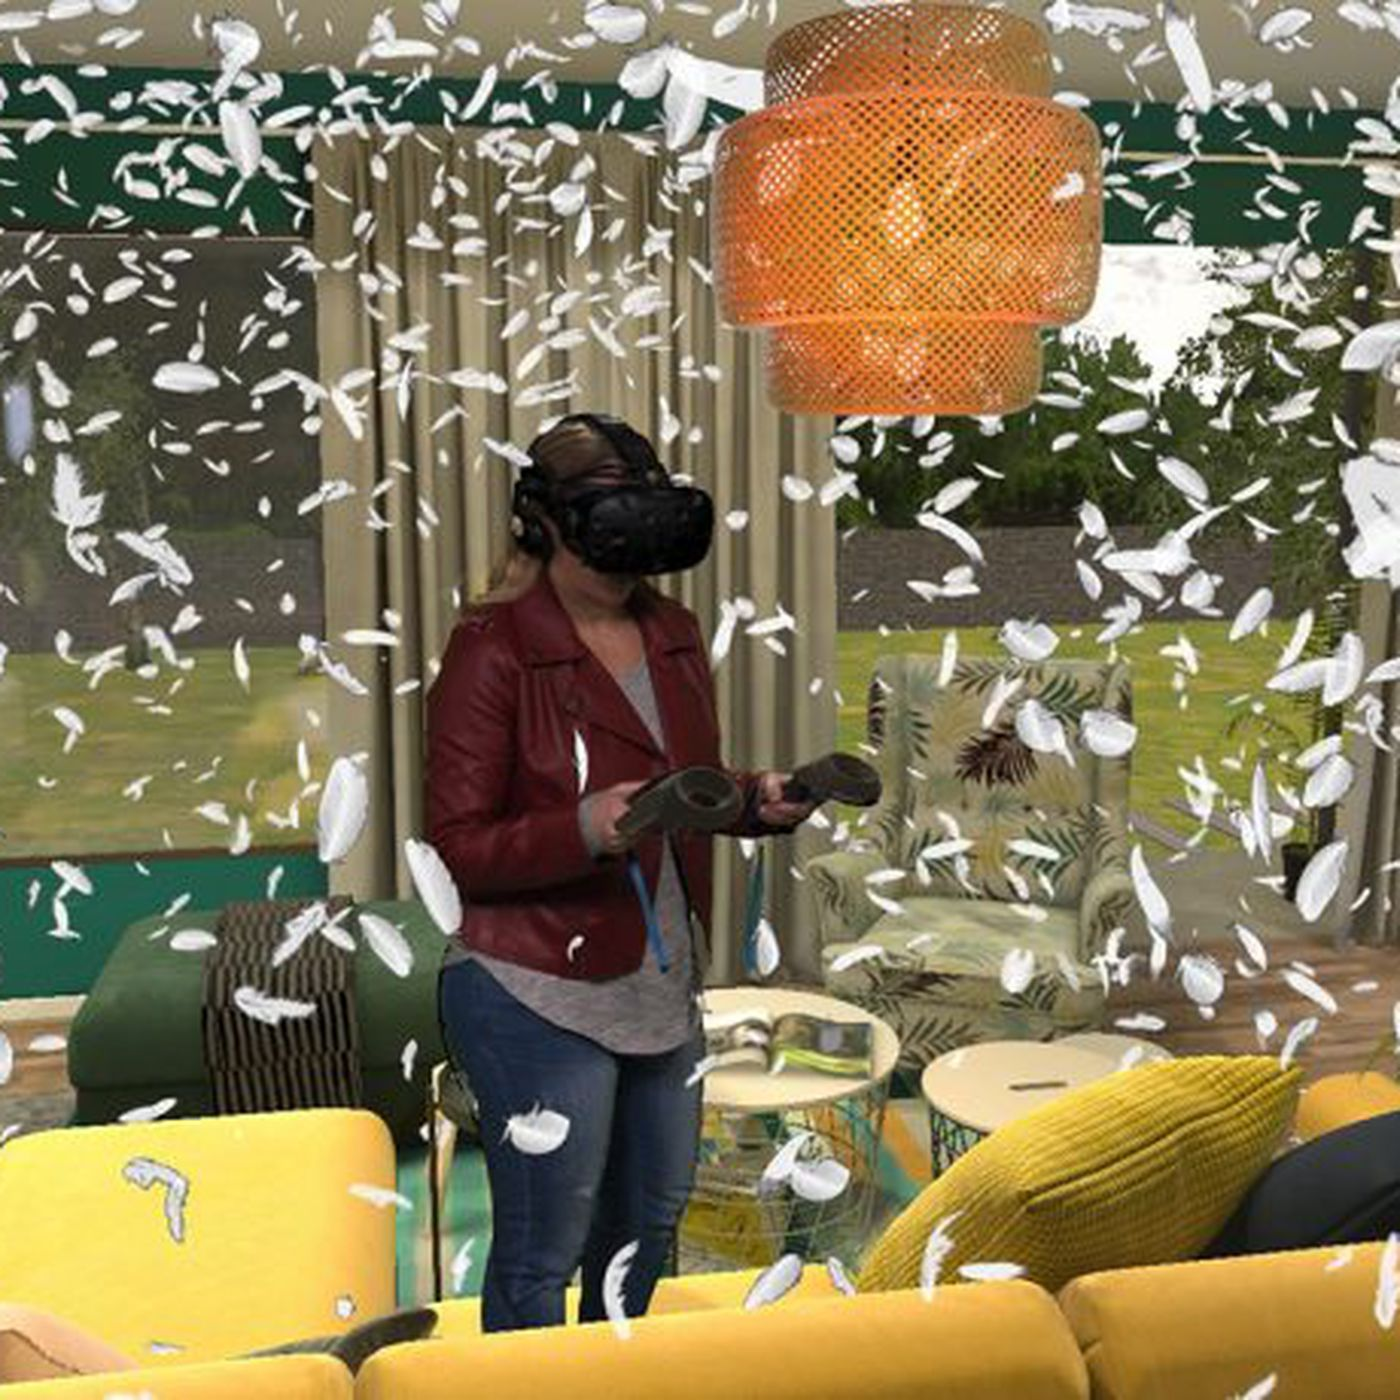 ede4216980d Ikea toys with VR experiences at new store opening - Curbed